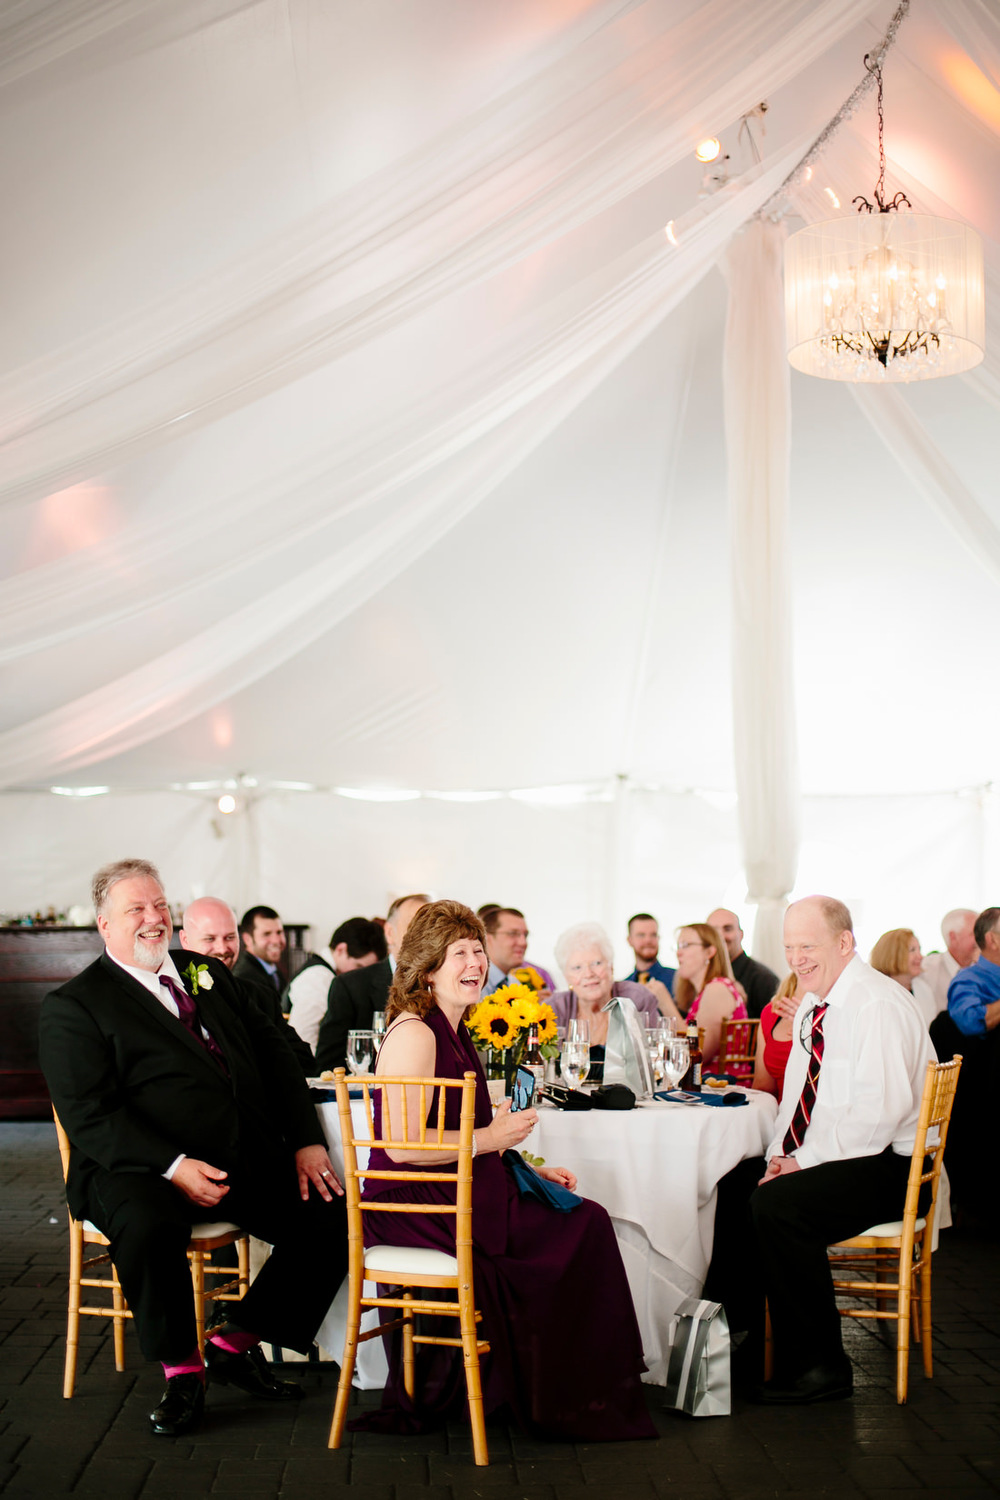 searles_castle_wedding_227.JPG